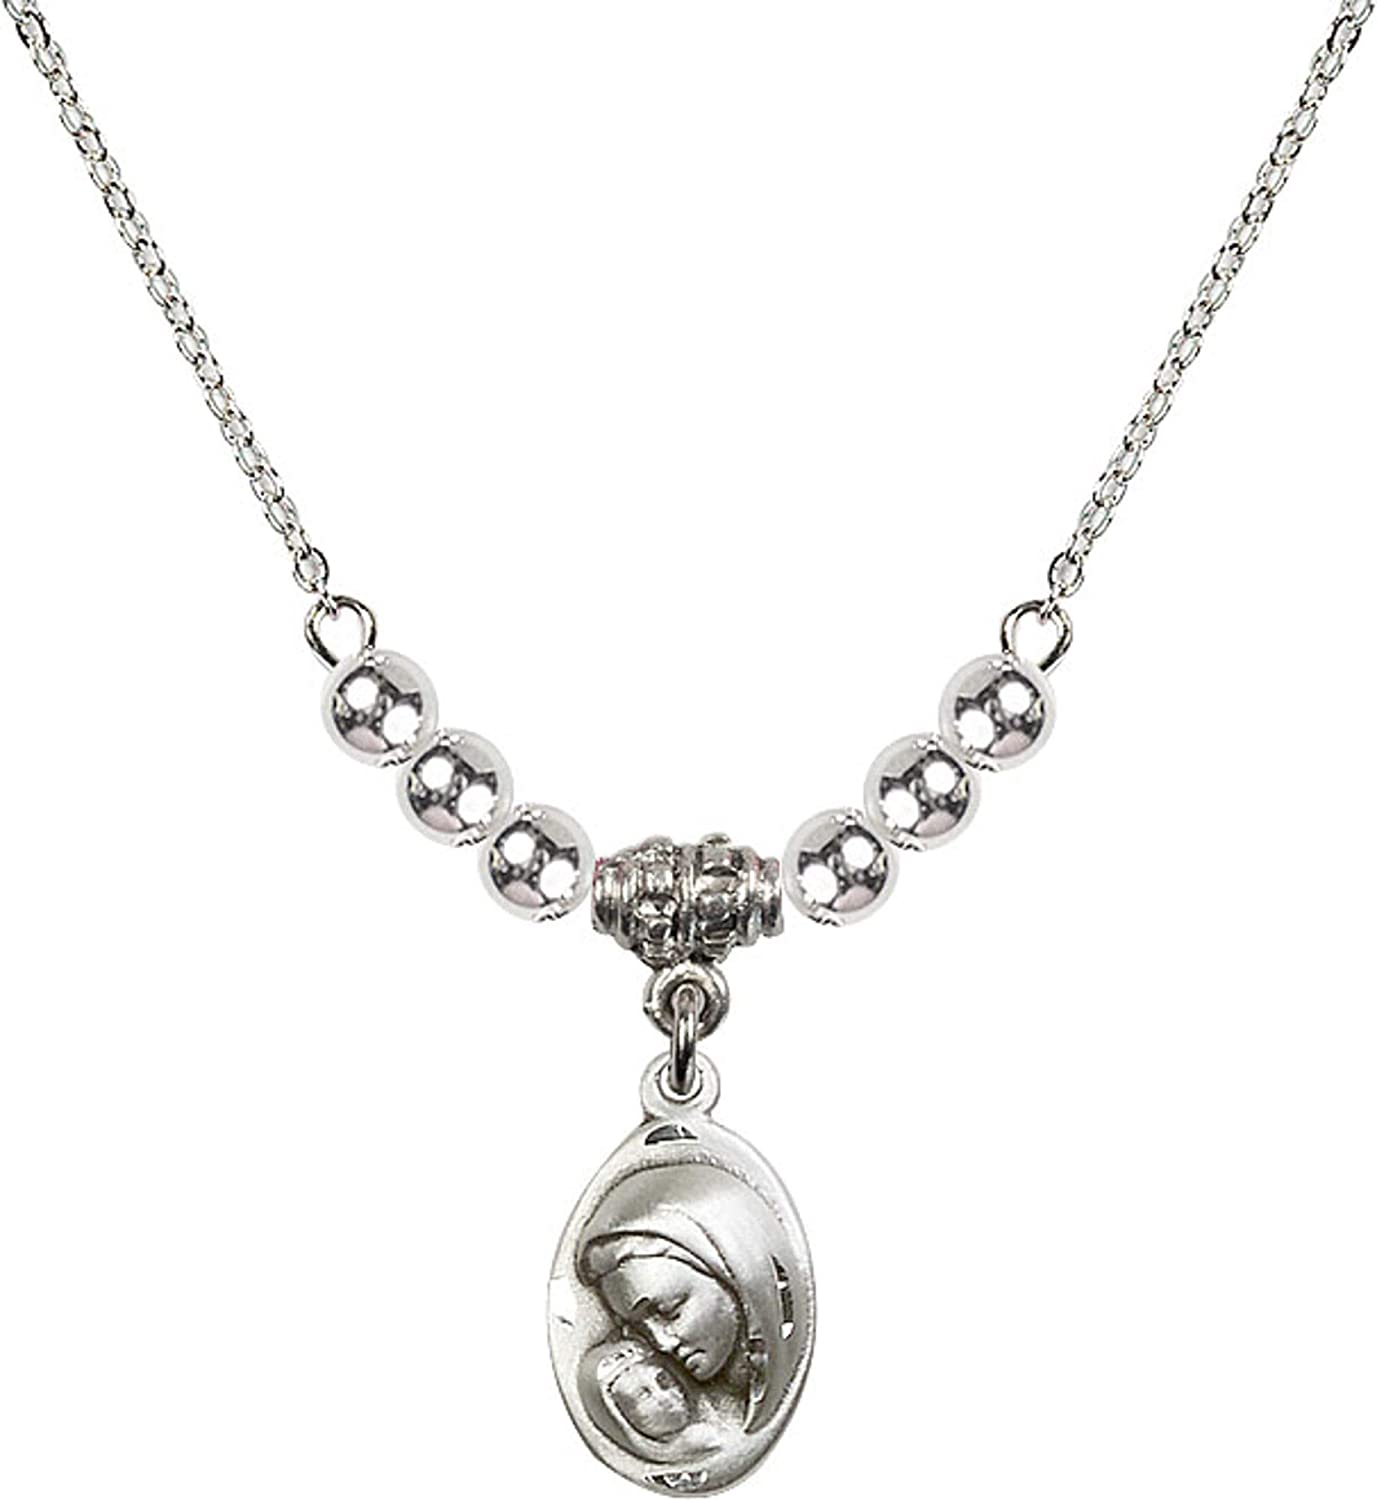 Bonyak Jewelry 18 Inch Rhodium Plated Necklace w// 4mm Sterling Silver Beads and Madonna /& Child Charm